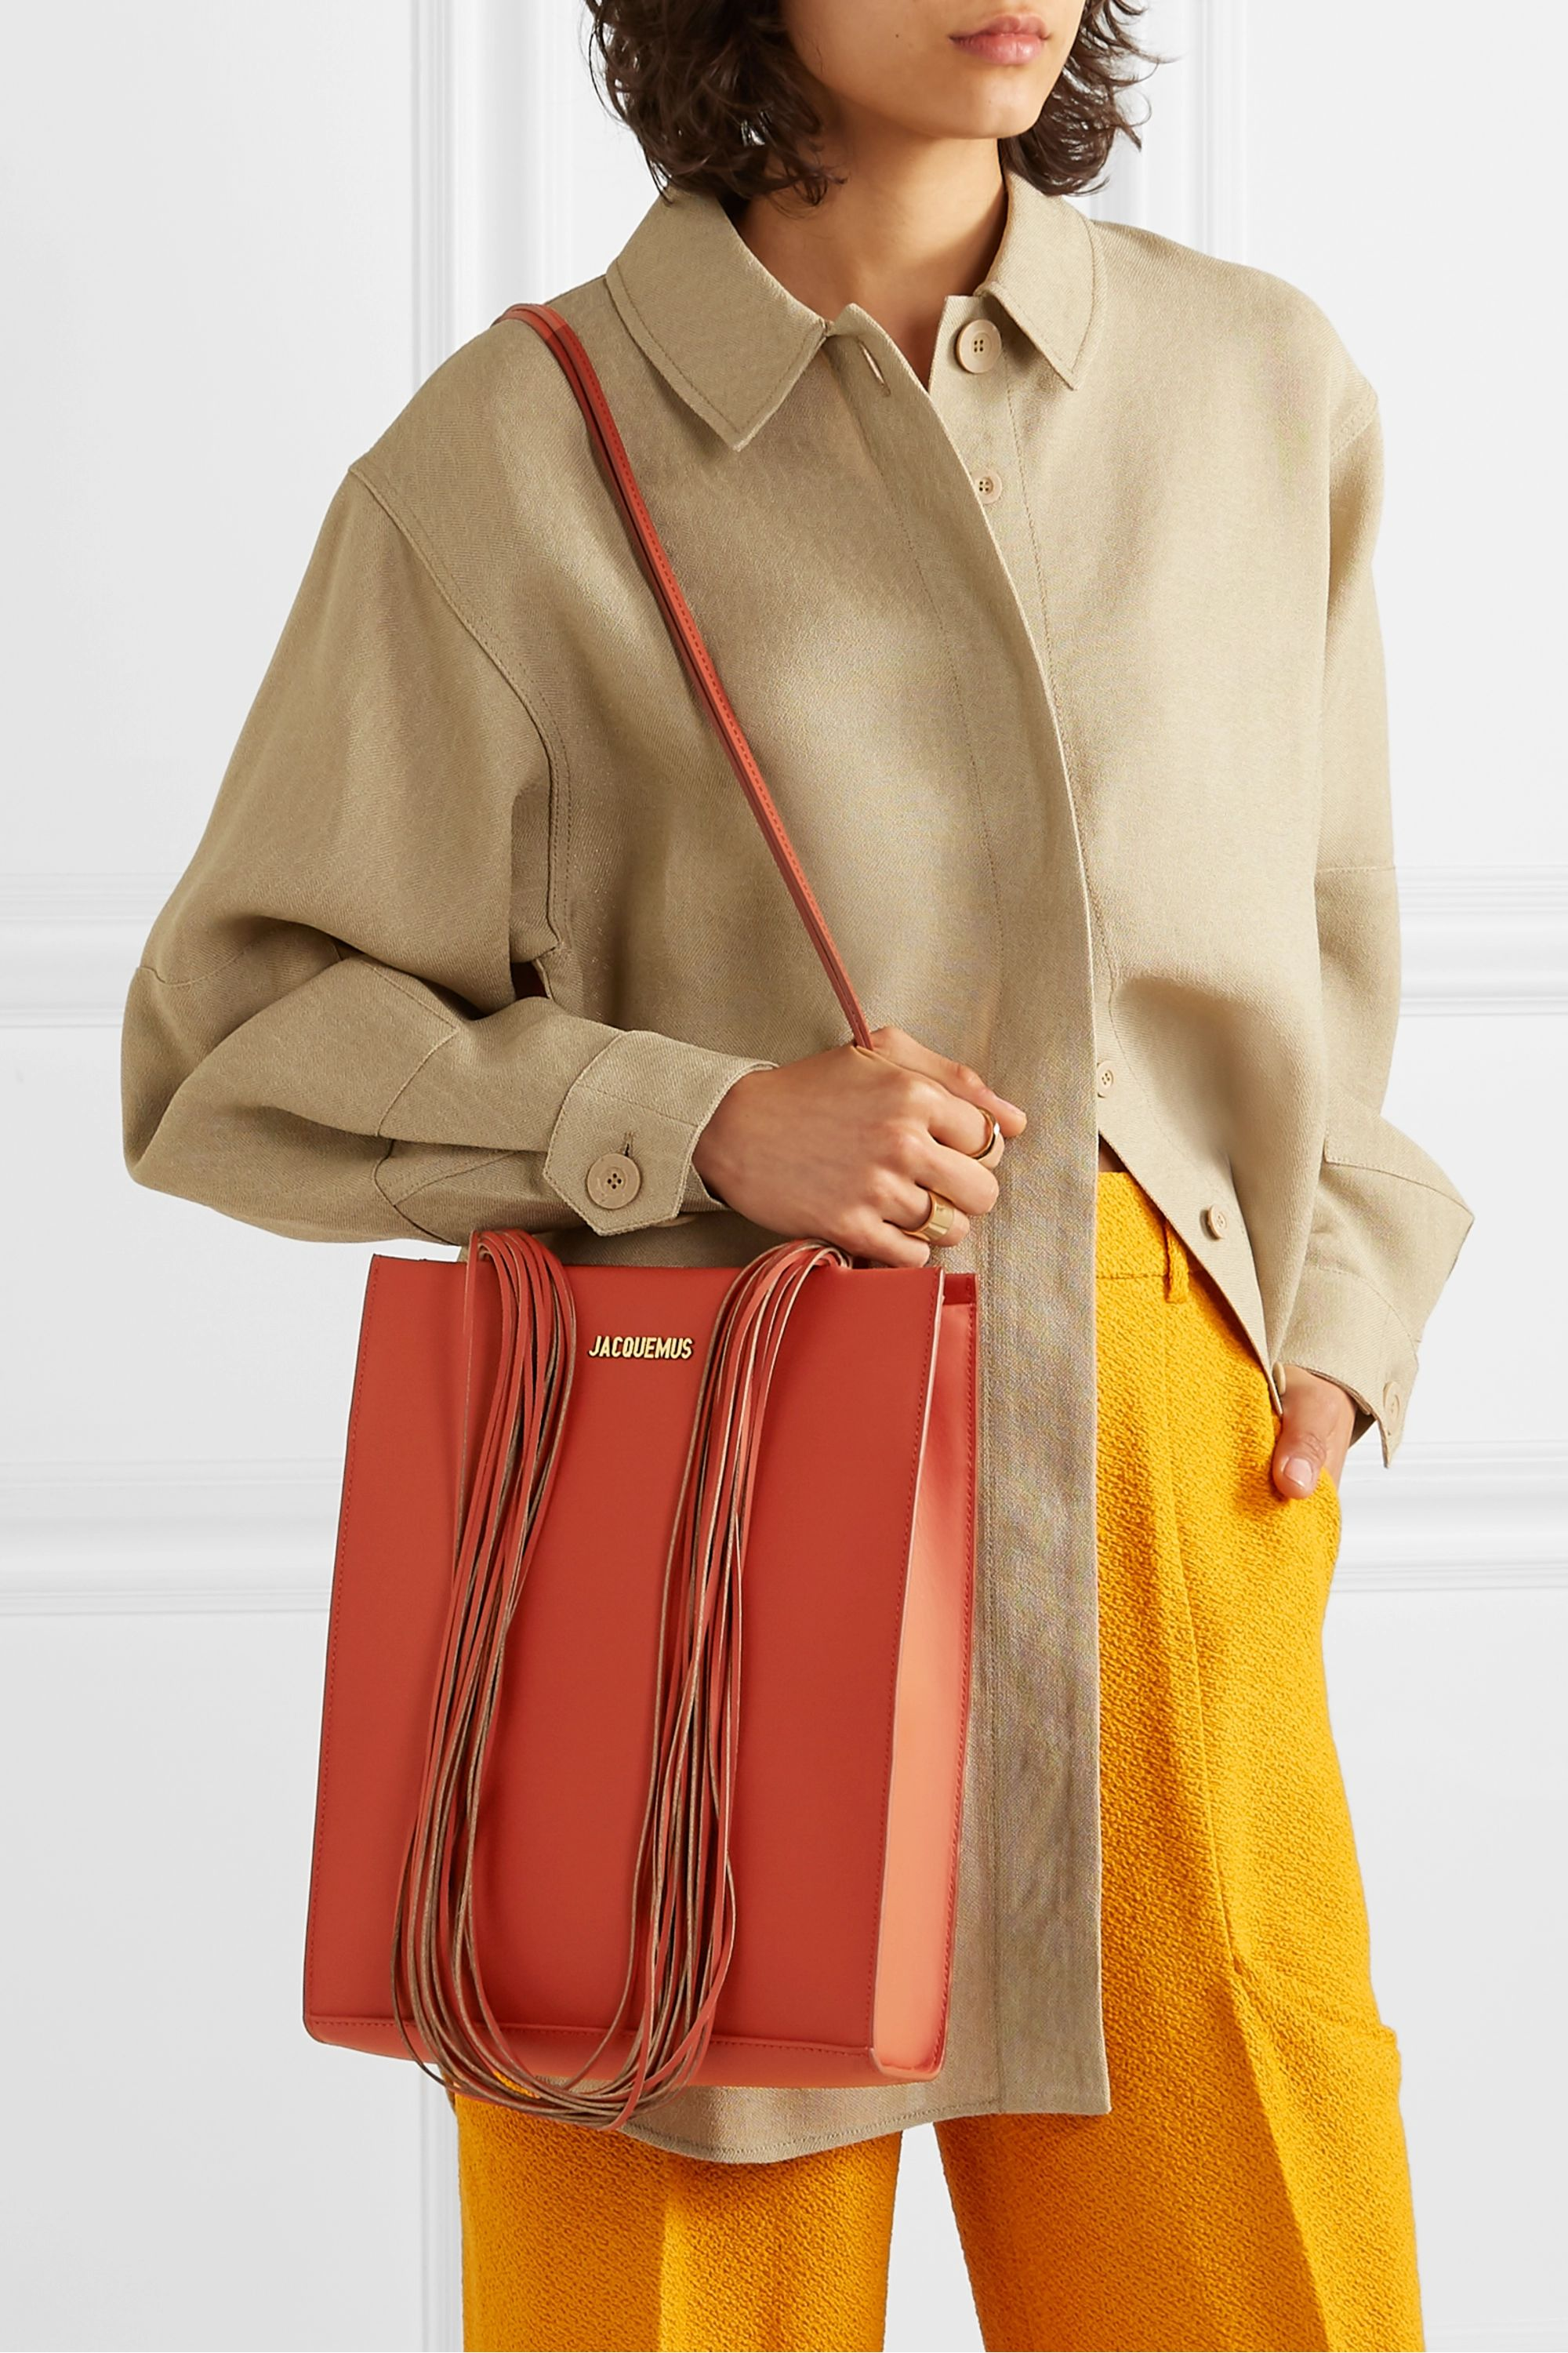 Jacquemus Le A4 leather tote